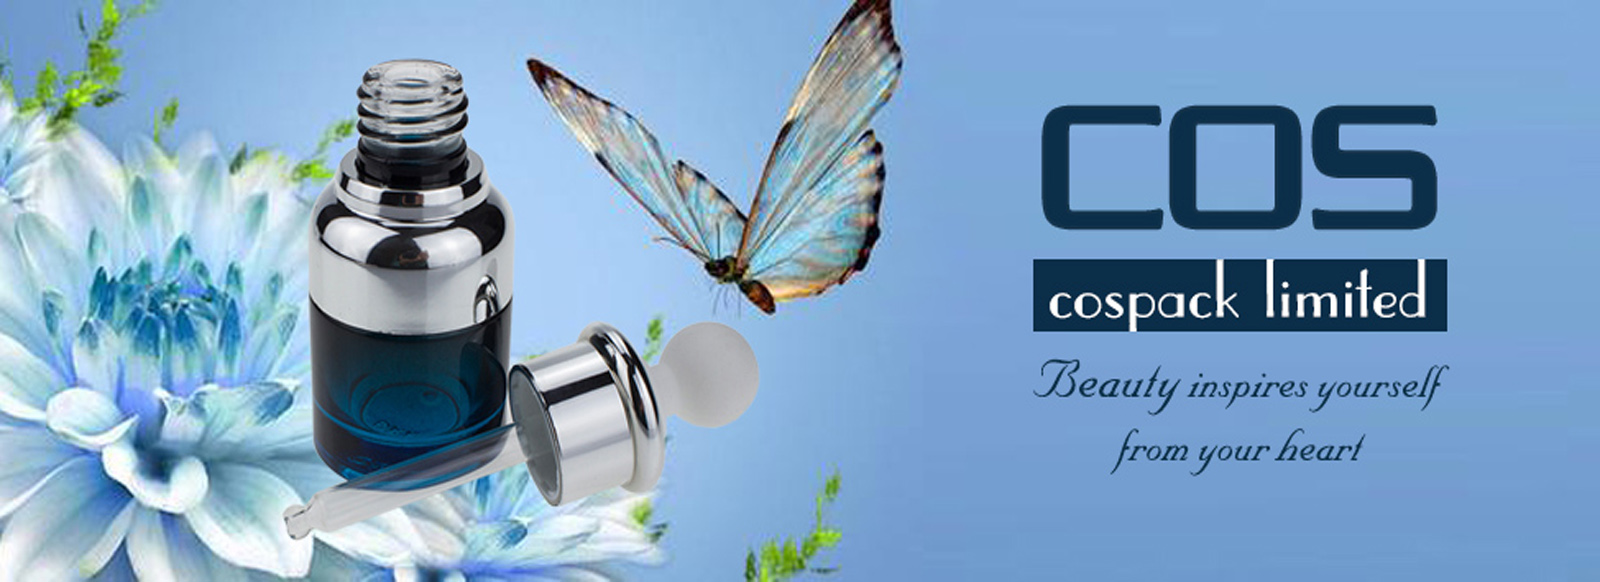 Airless Pump Bottles,Cosmetic jars,Cream Containers-www.cospaks.com